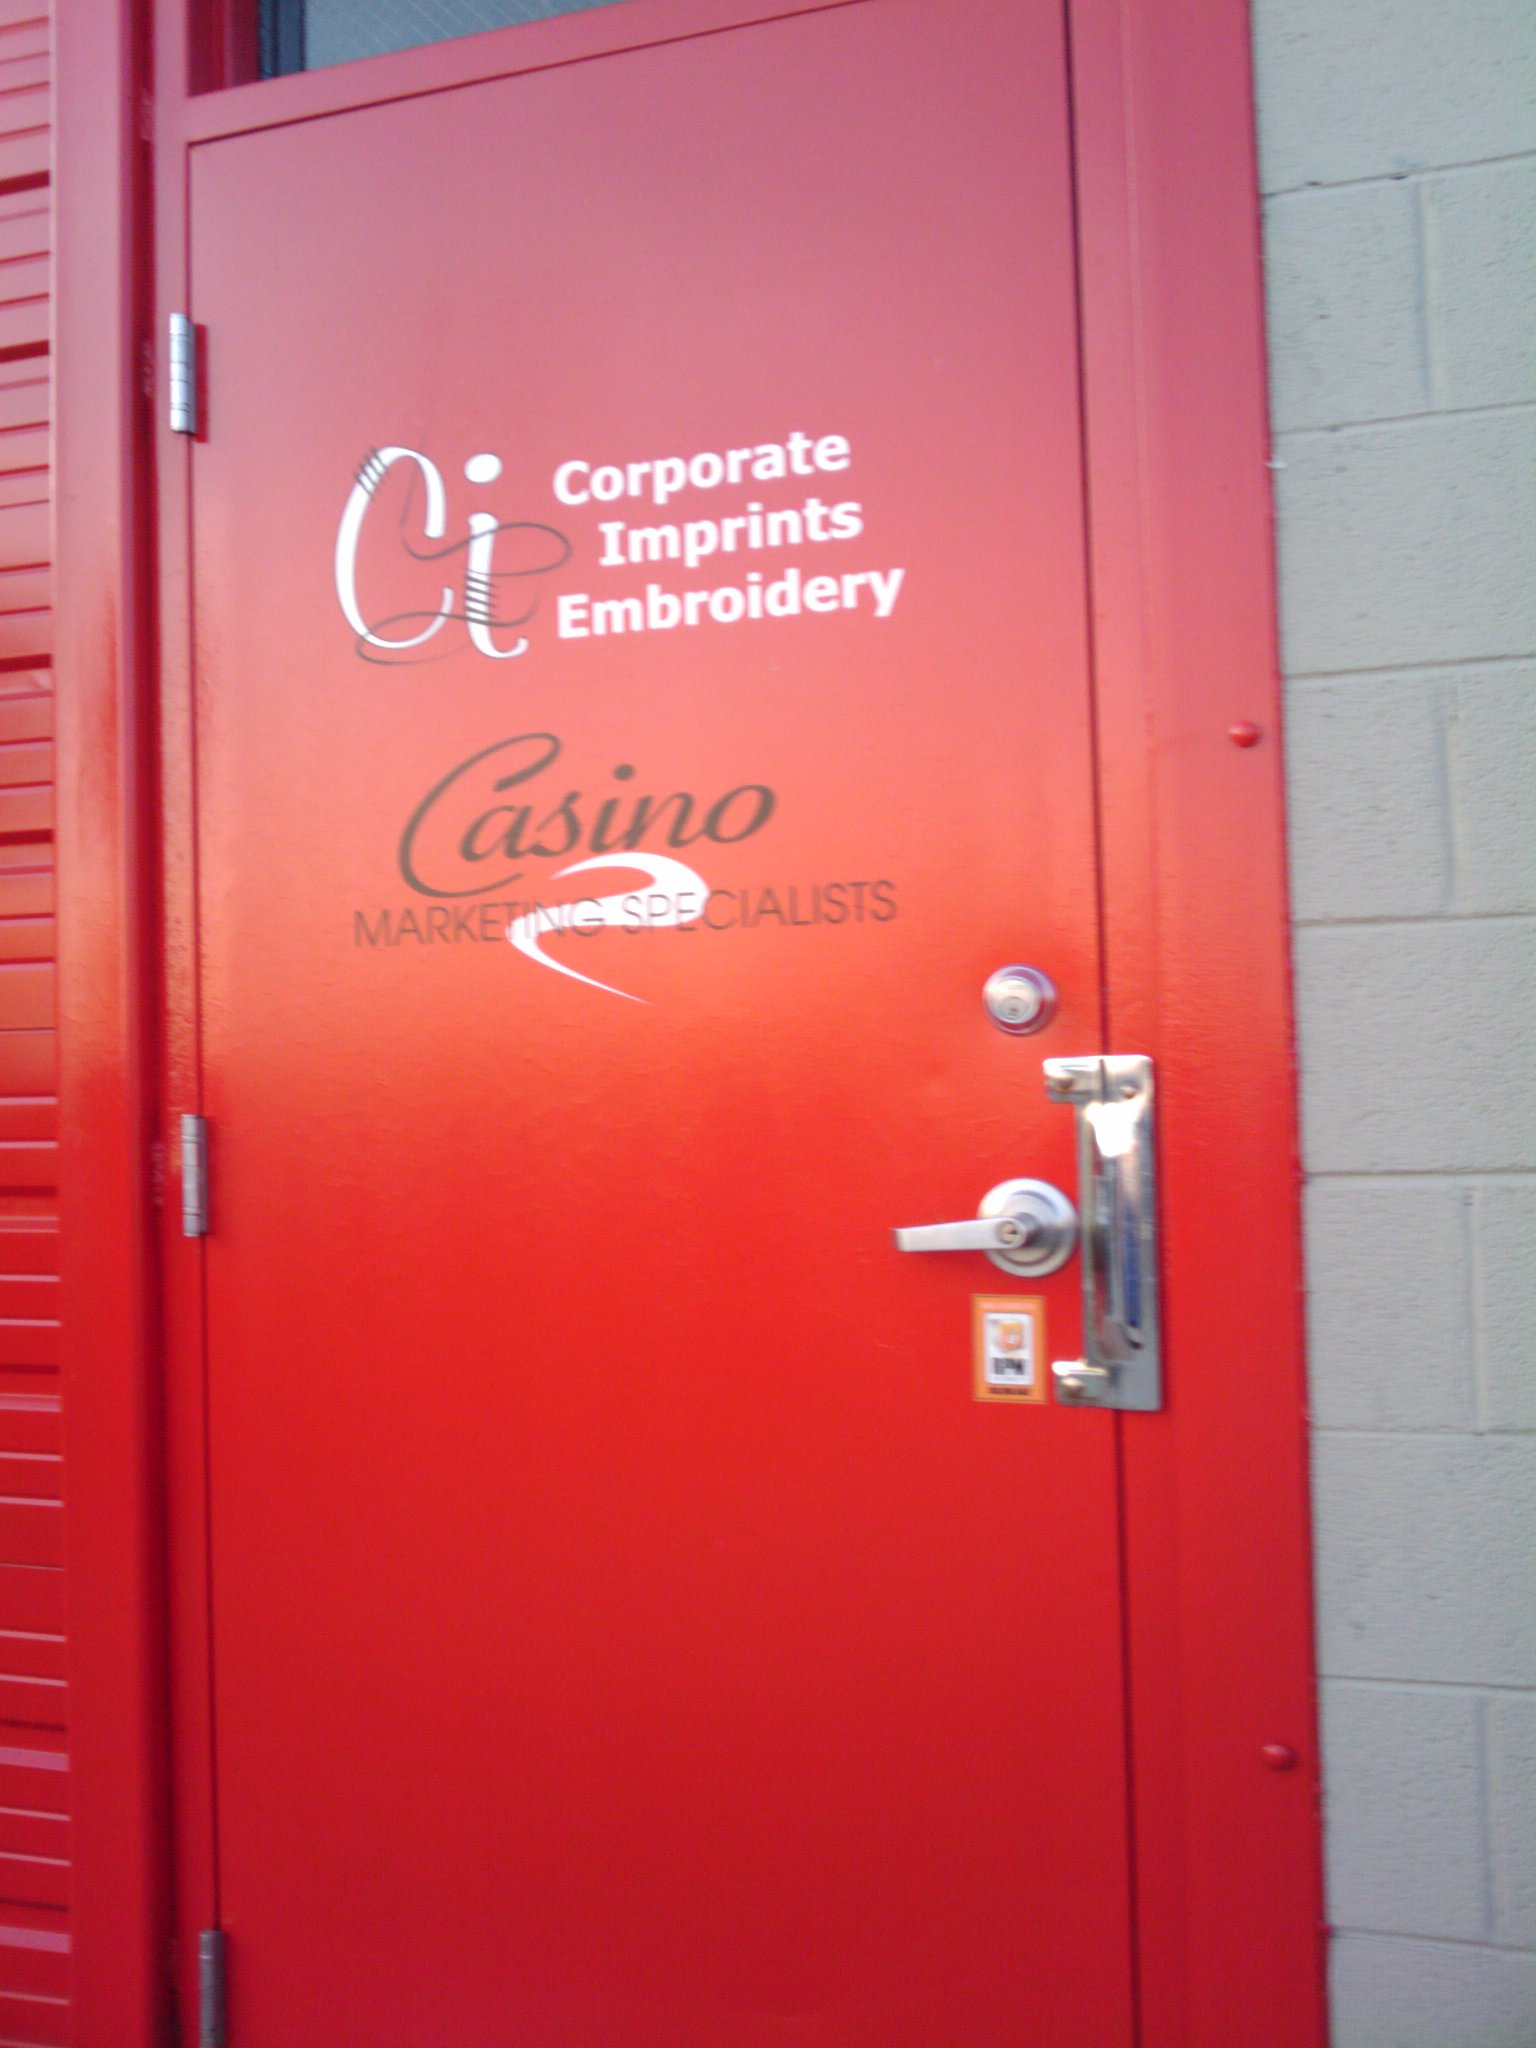 Front Door At Corporate Imprints Embroidery Casino Marketing